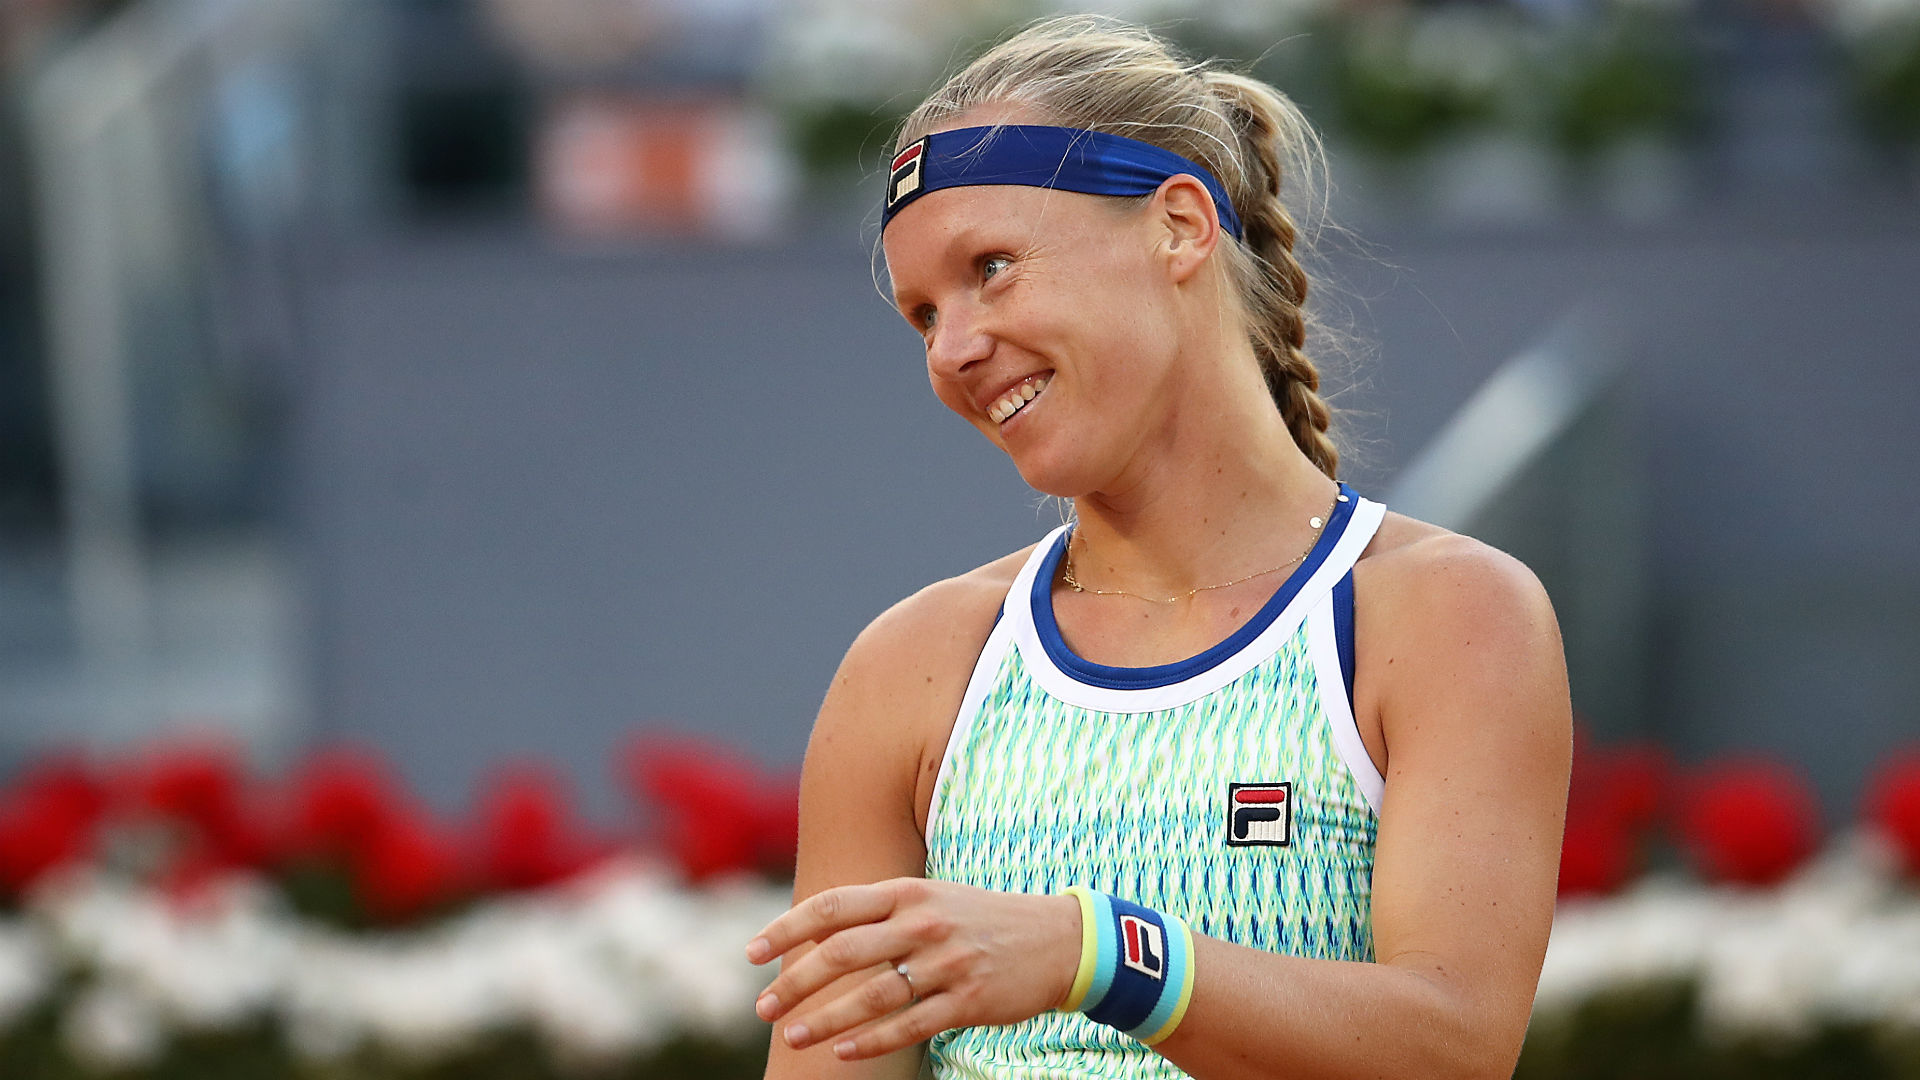 Bertens wins twice in a day to reach semi-finals on home soil